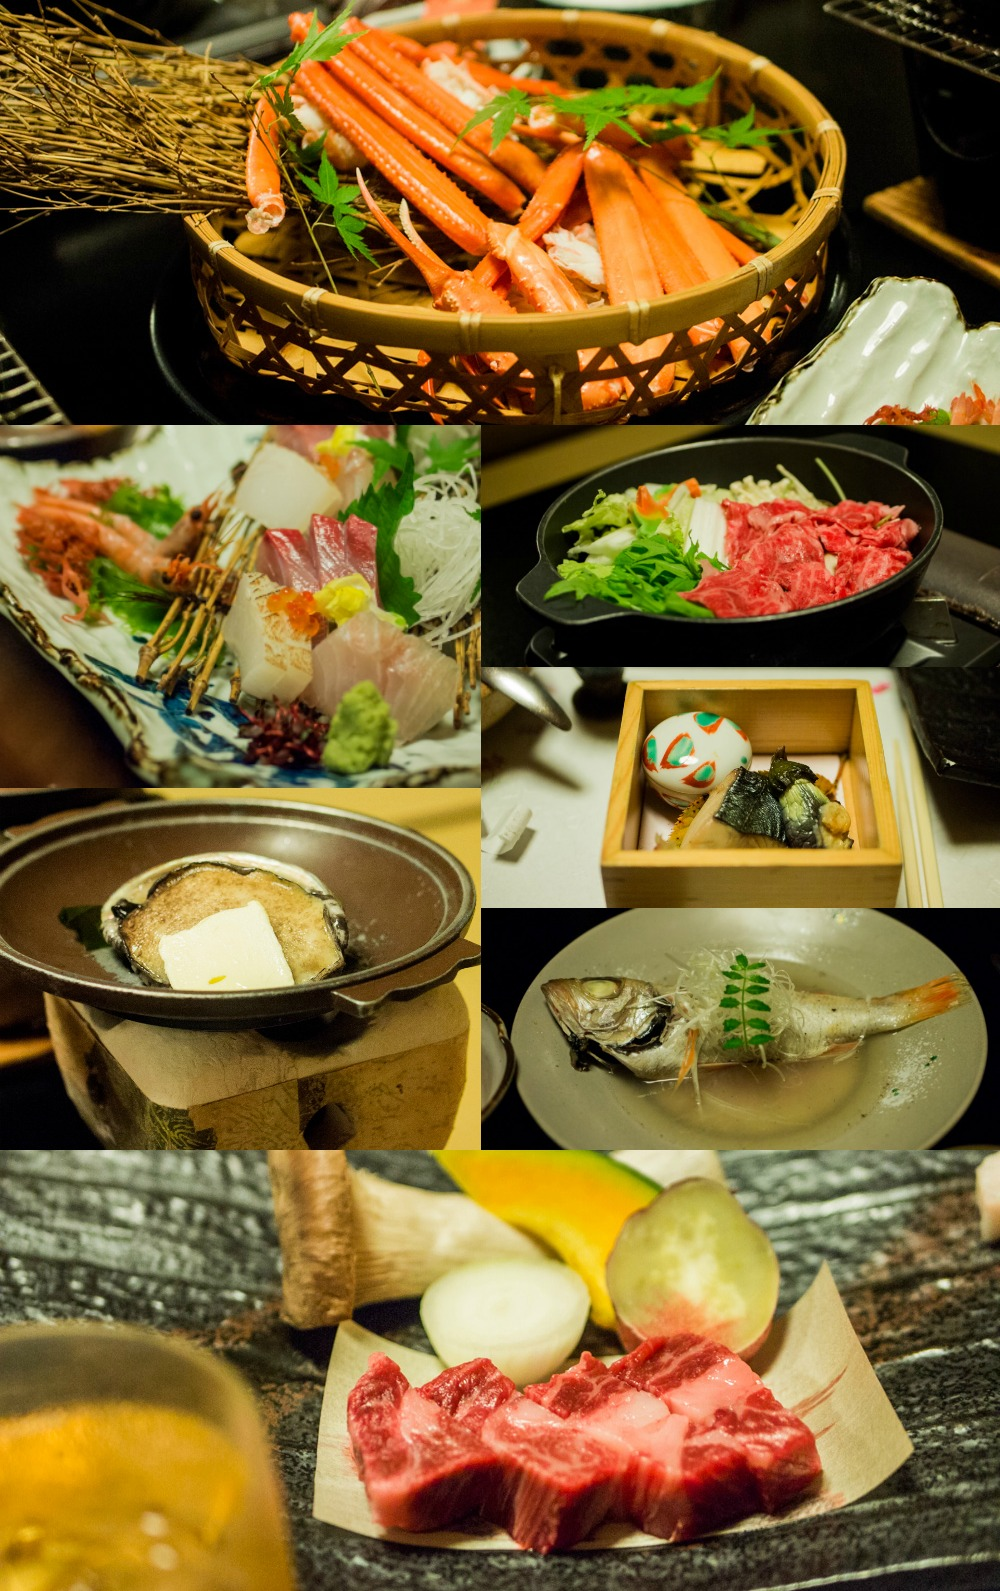 Dinner in Yuraku Kinosaki Spa & Garden - Hot Springs of a Lifetime in Kinosaki Onsen (Japan Travel)